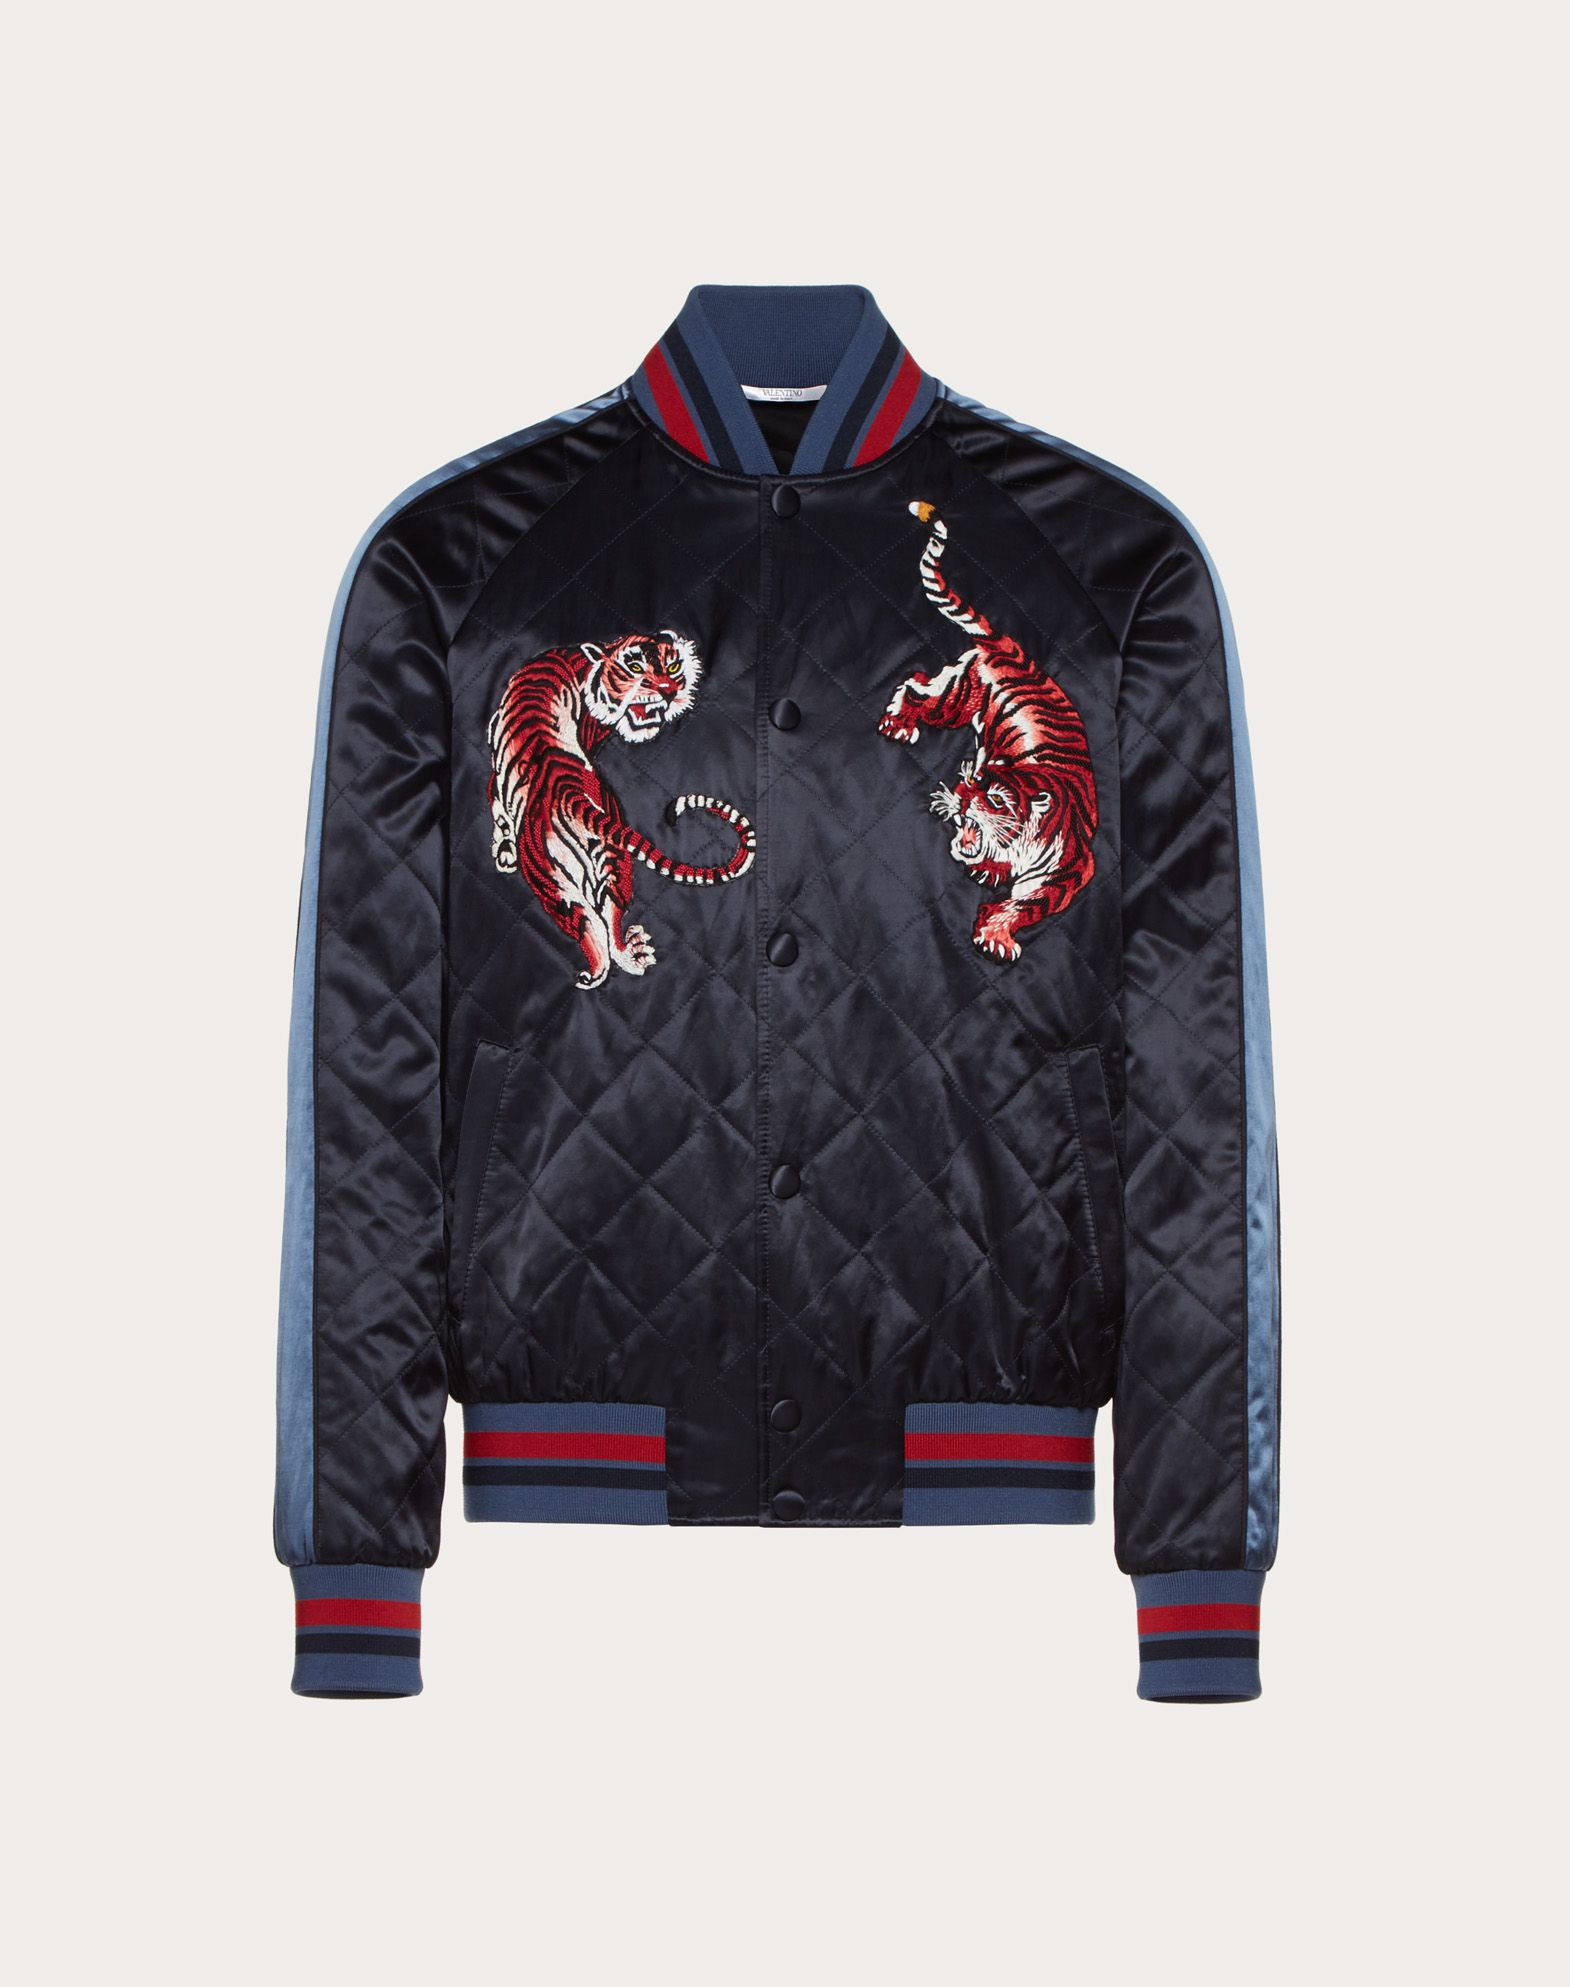 BOMBER JACKET WITH GO TIGER EMBROIDERY